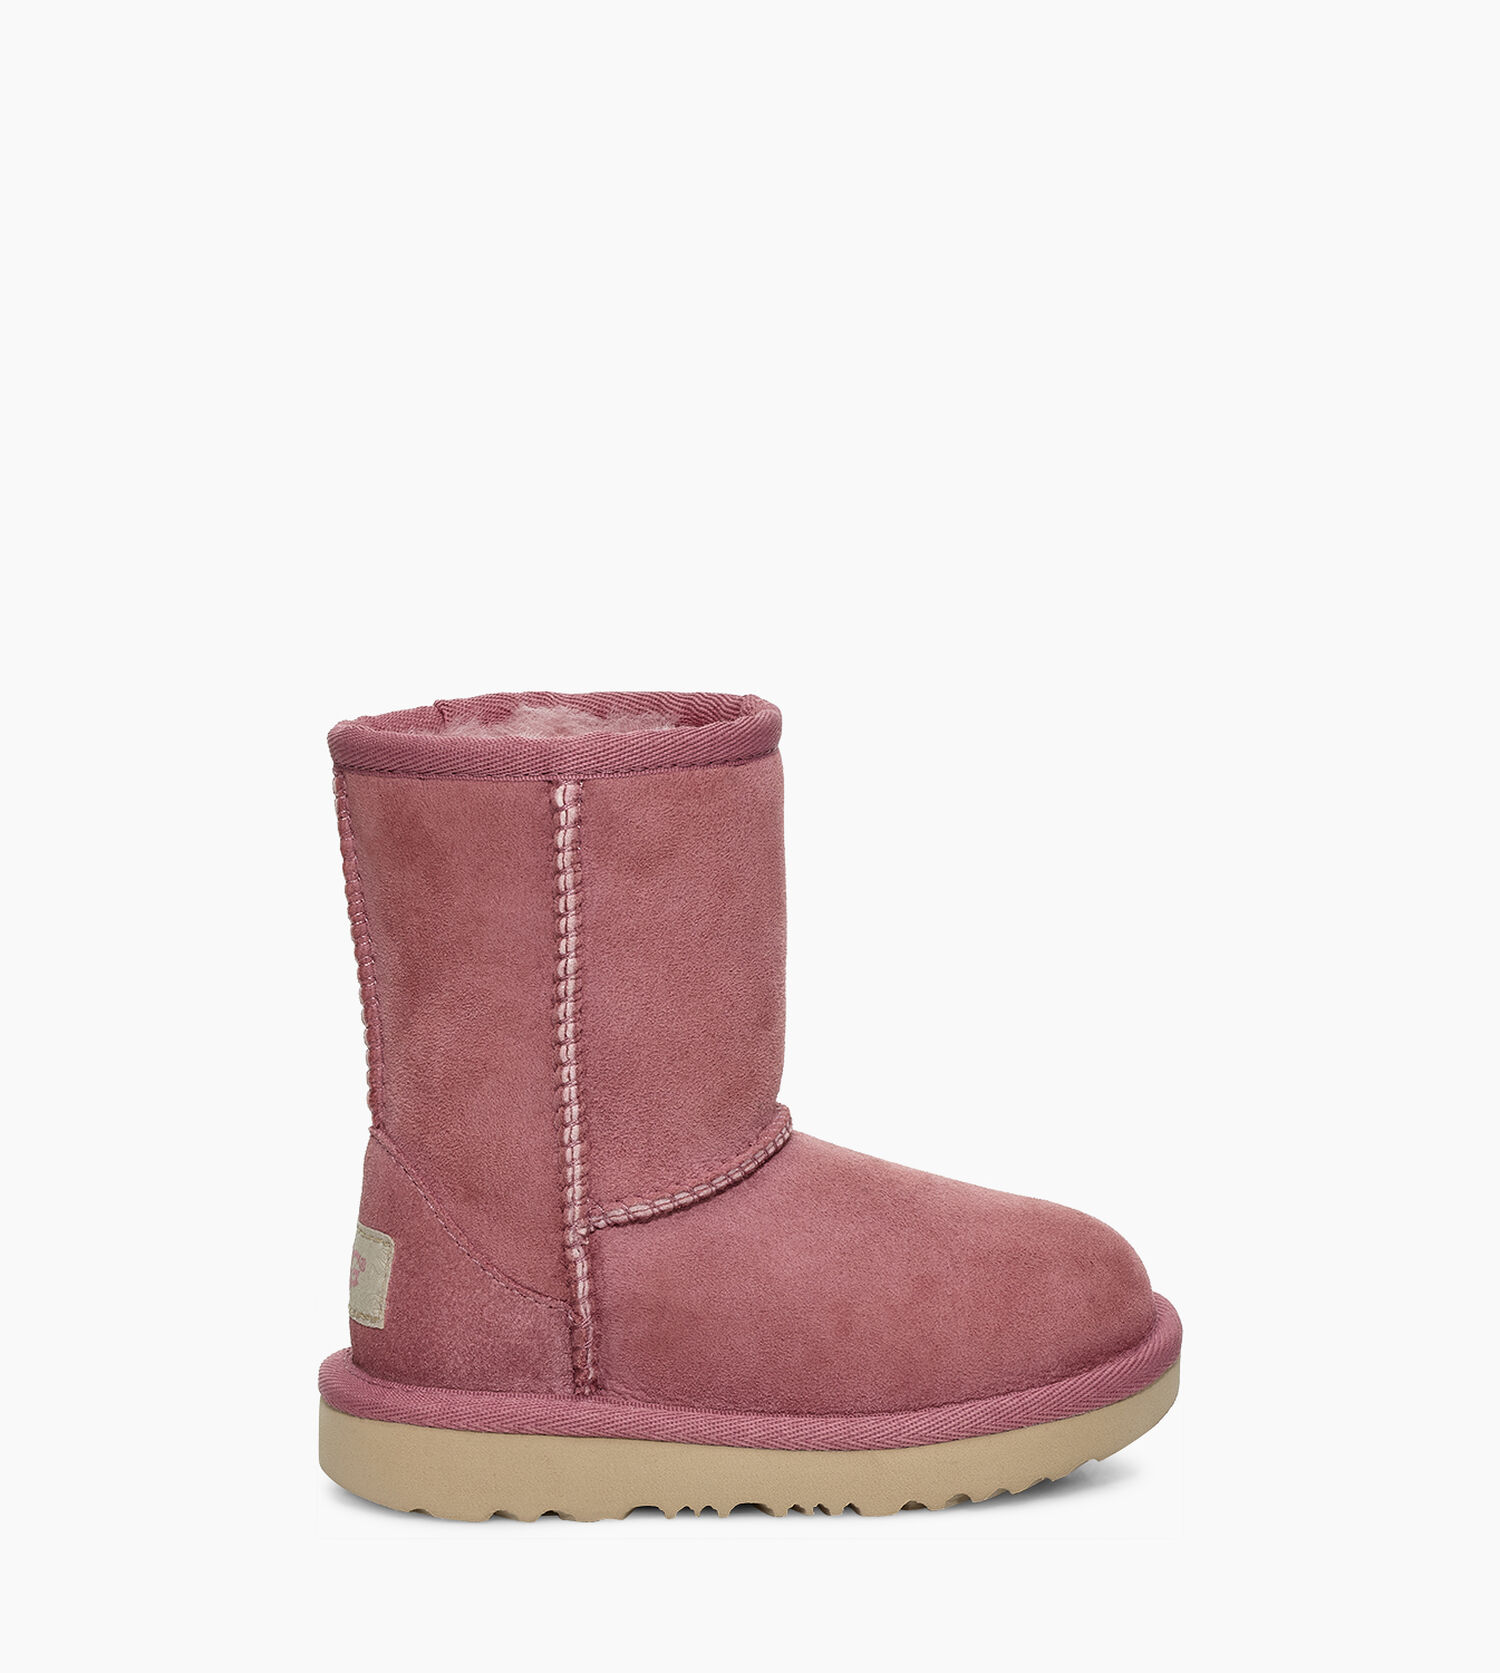 0913367eb1c Toddlers' Share this product Classic II Boot